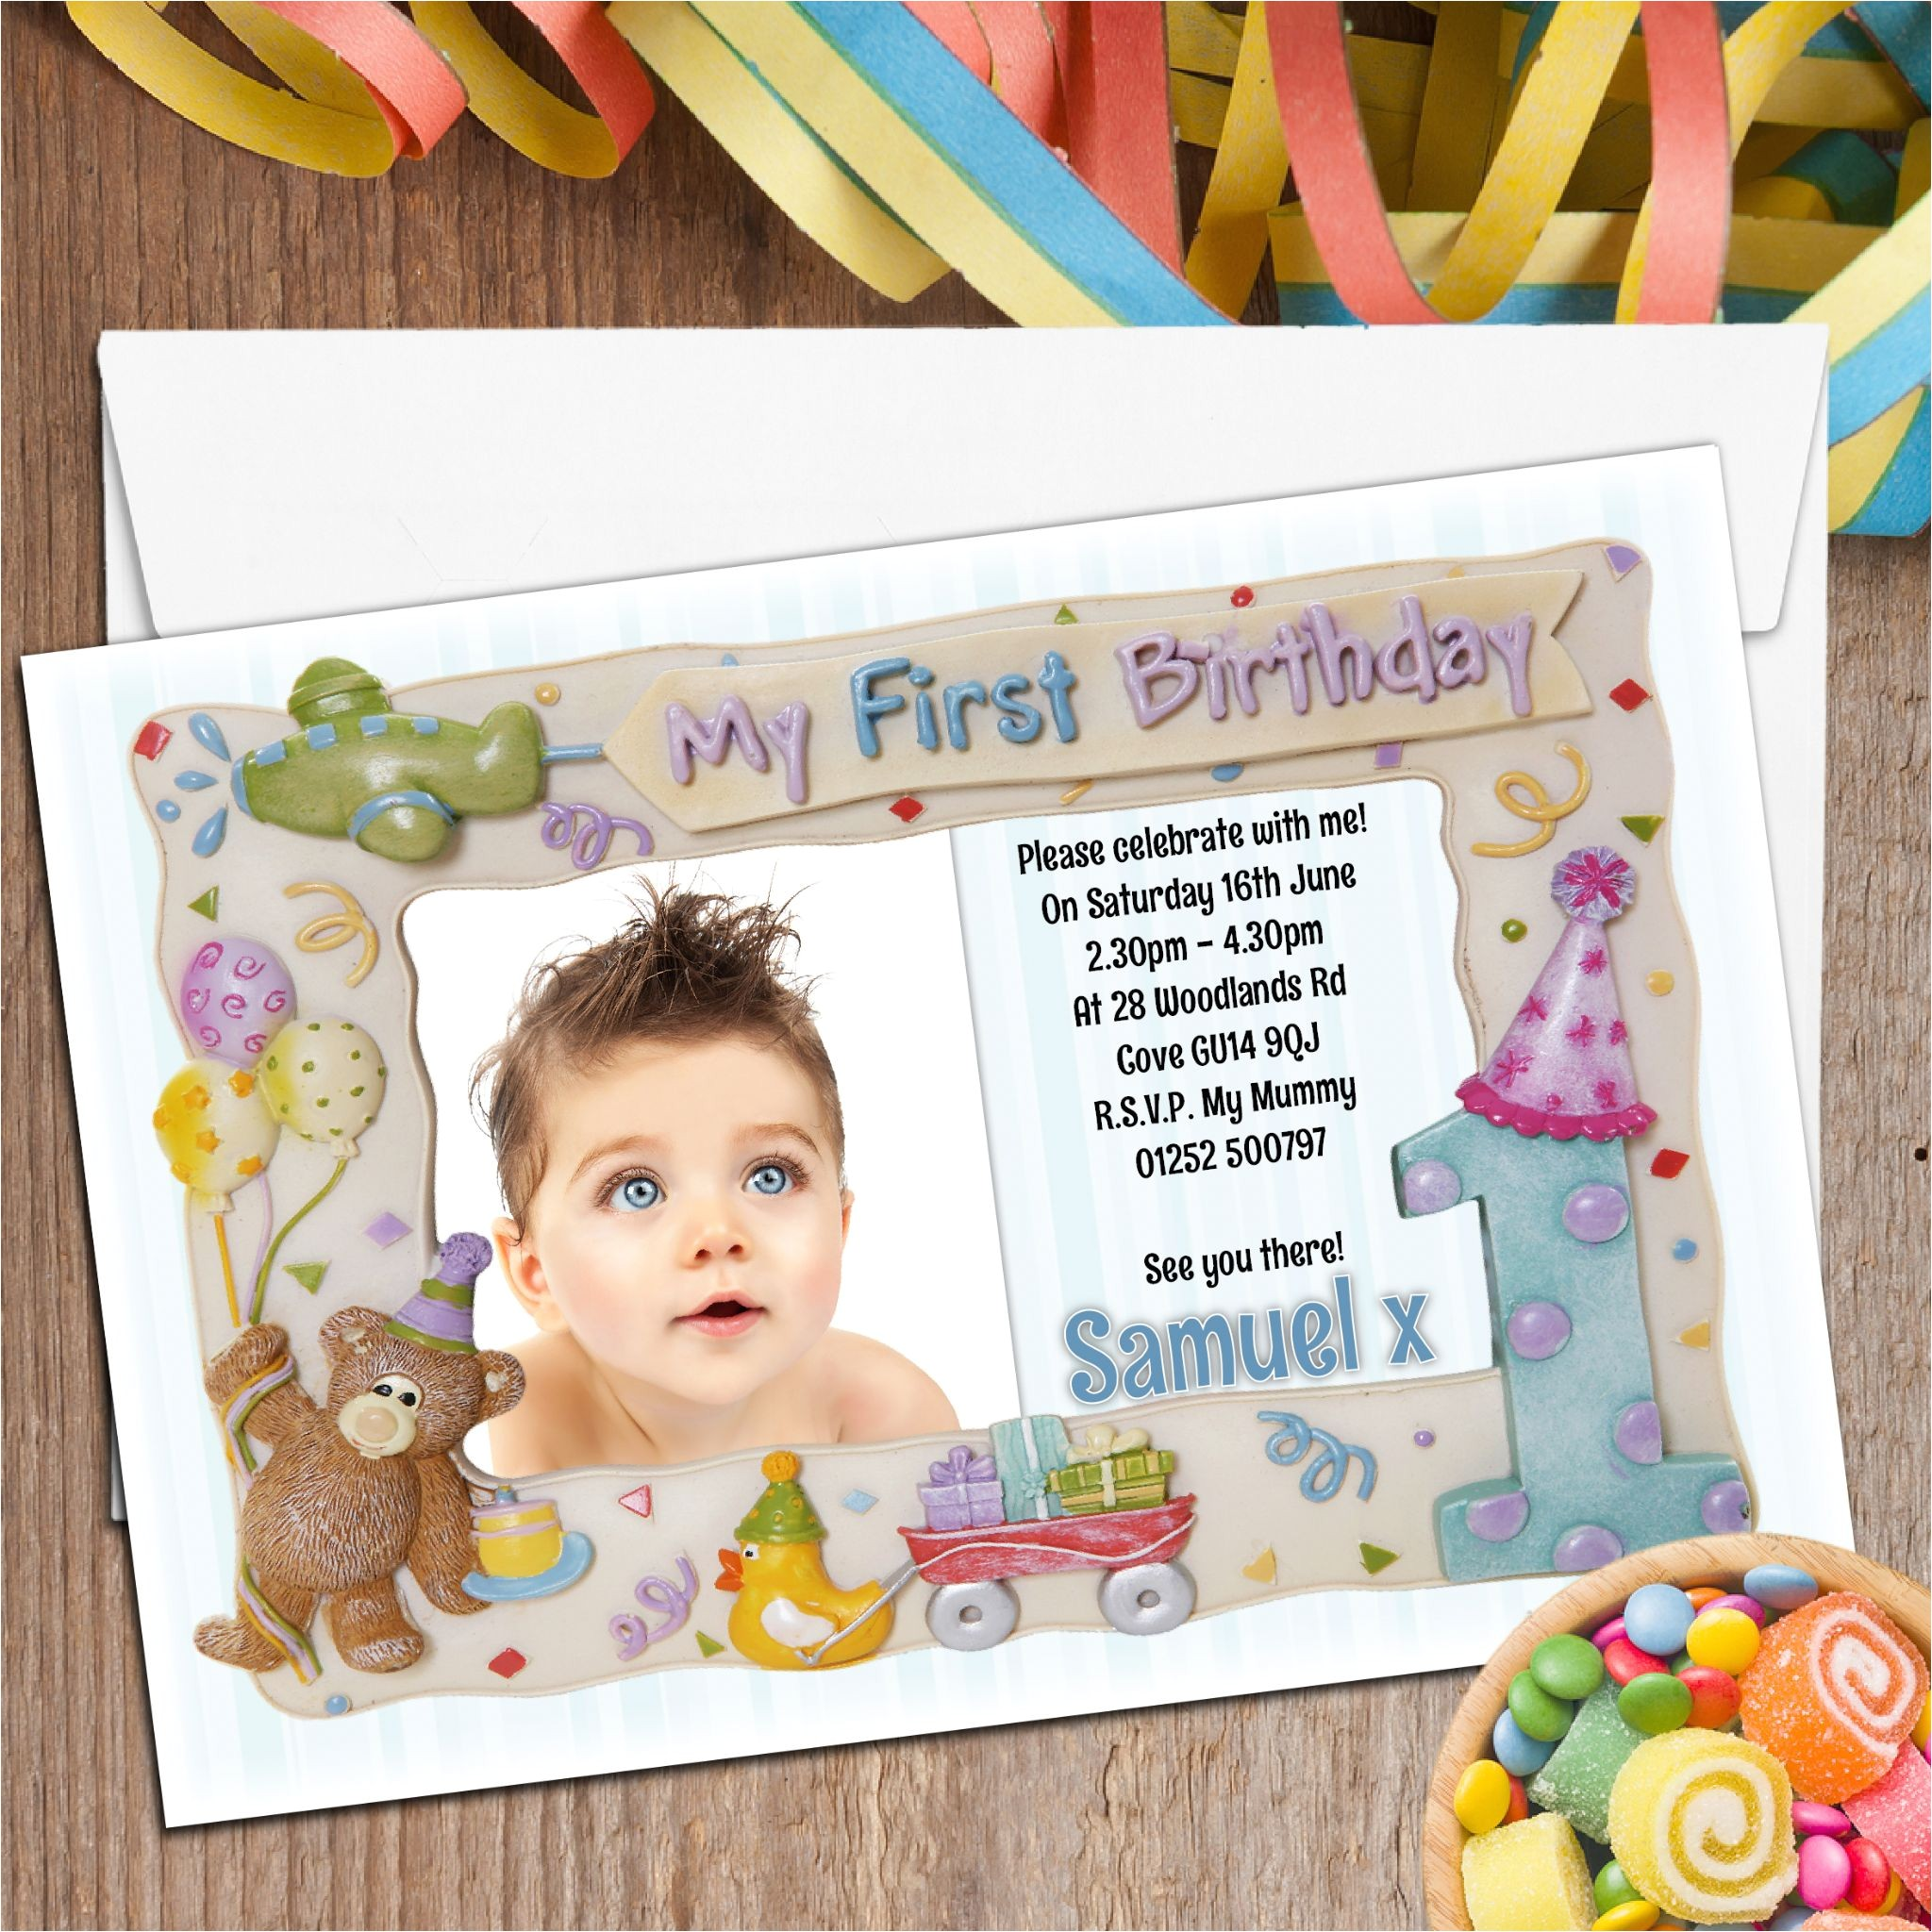 10 personalised first 1st birthday party frame photo invitations n2 196 p